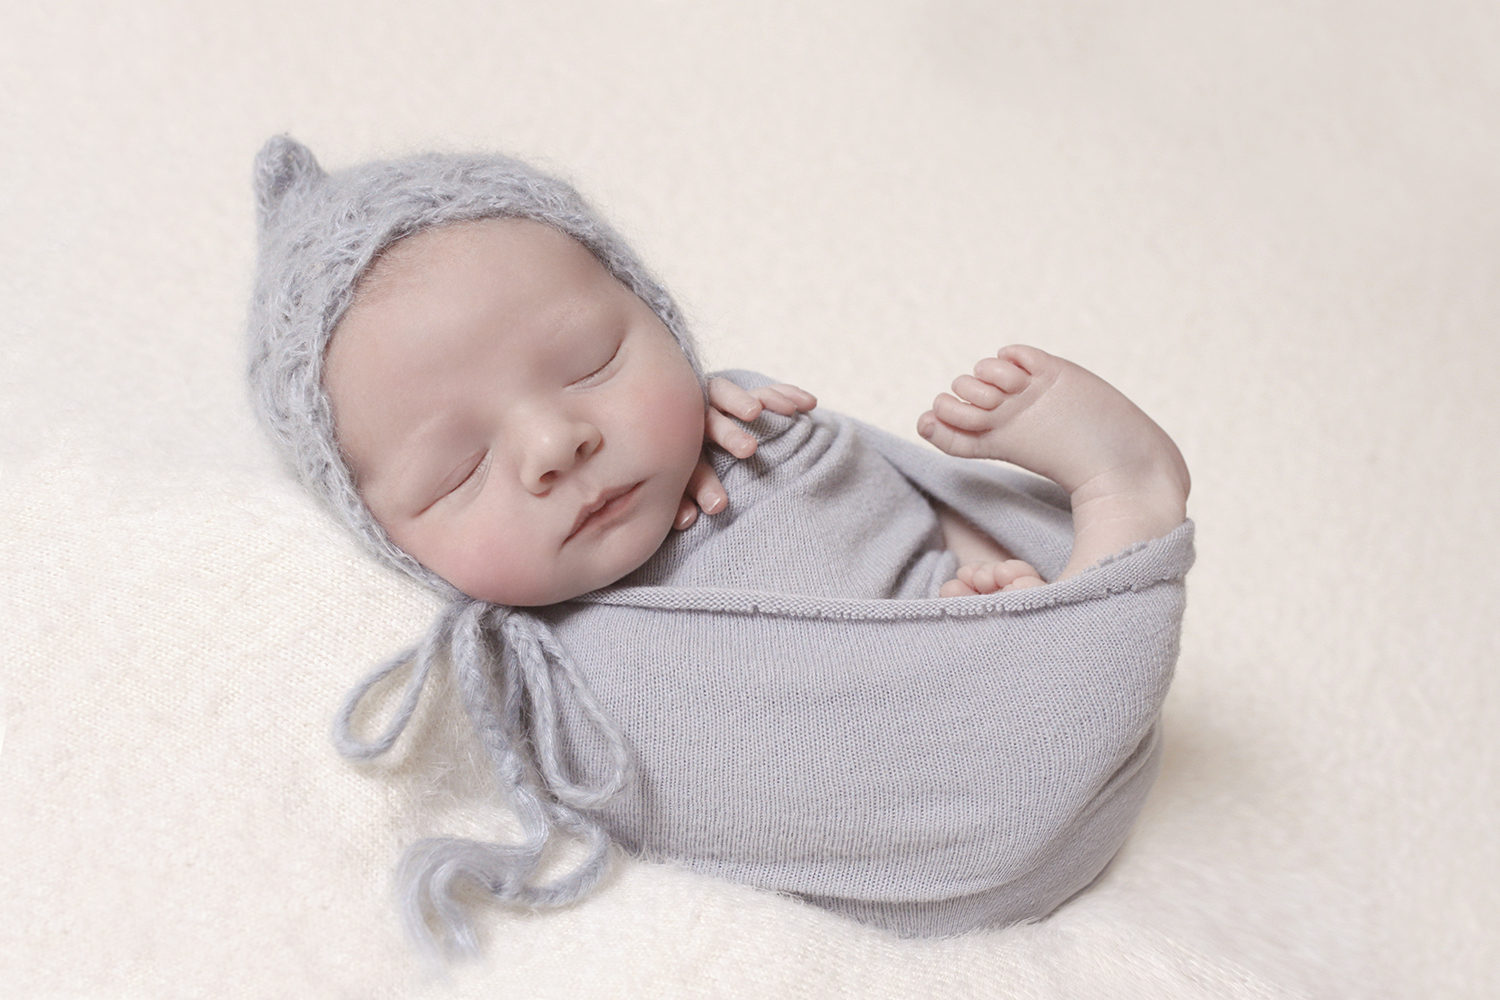 Newborn baby boy sleeping on cream blanket wrapped in blue wrap and blue knit bonnet